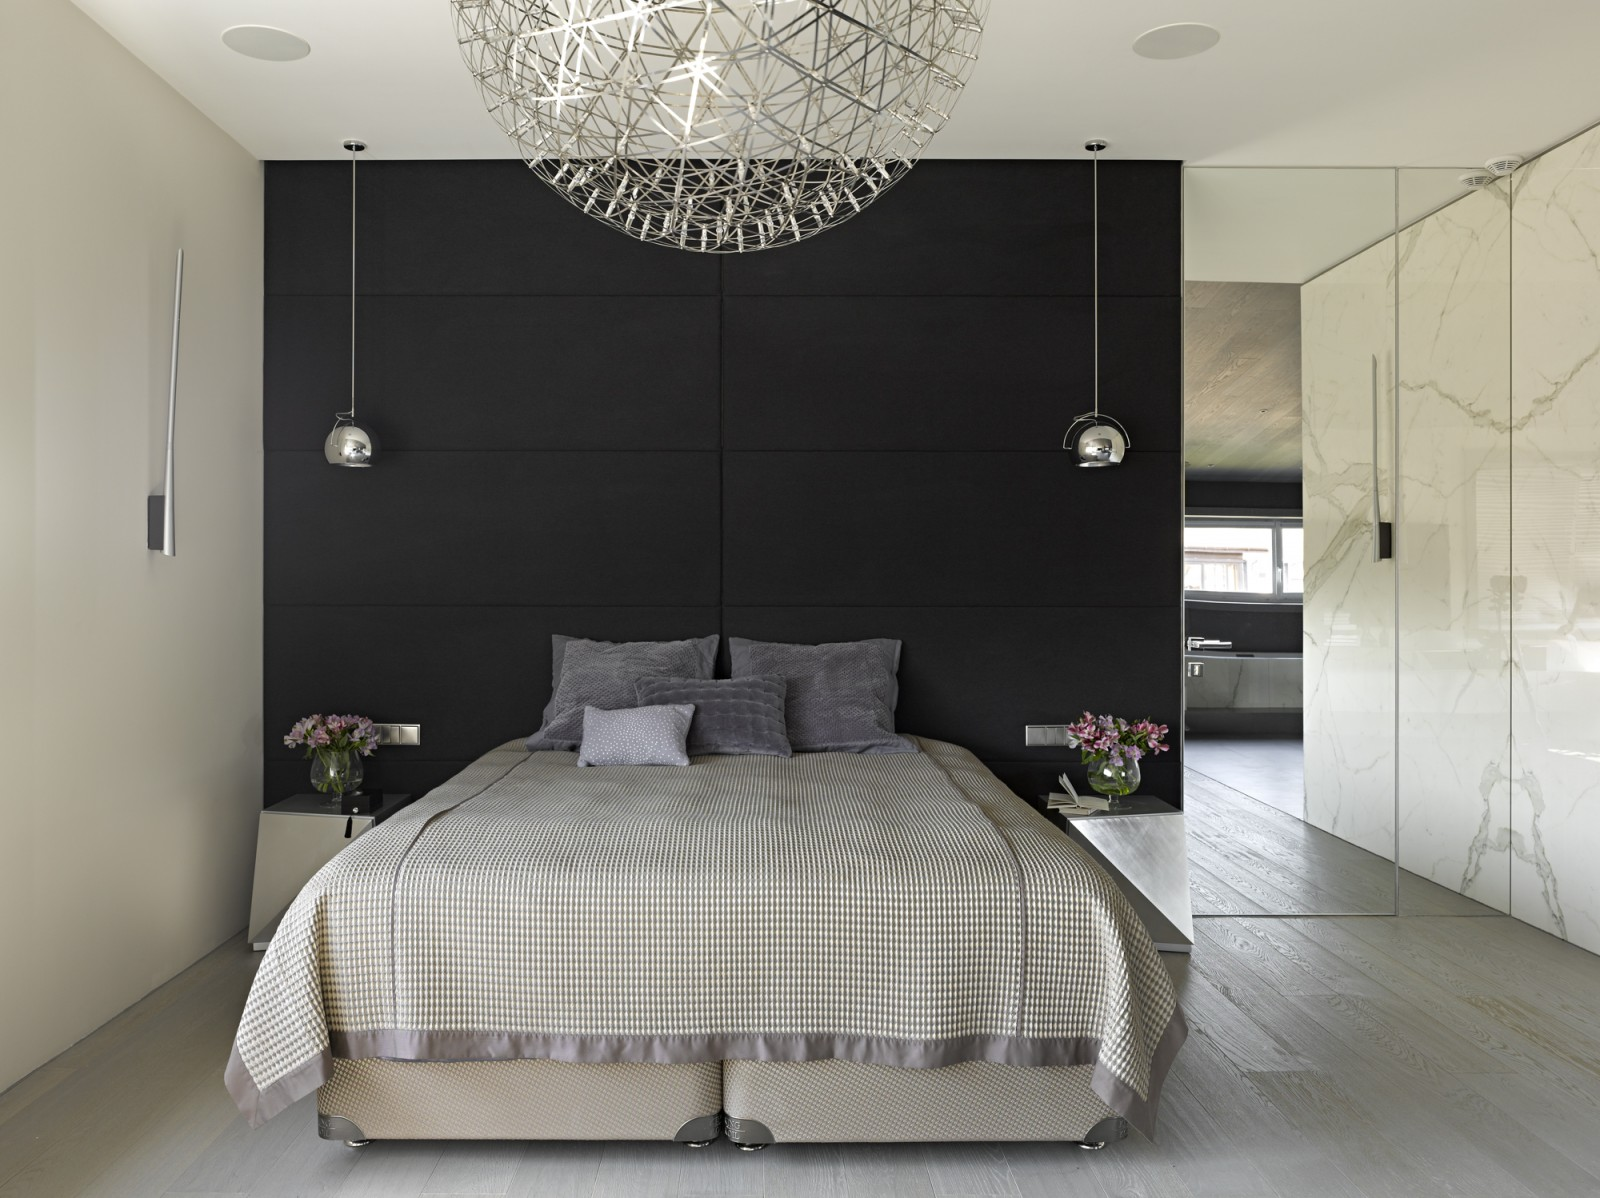 20 Small Bedroom Ideas That Will Leave You Speechless ... on Ideas For Small Rooms  id=17314